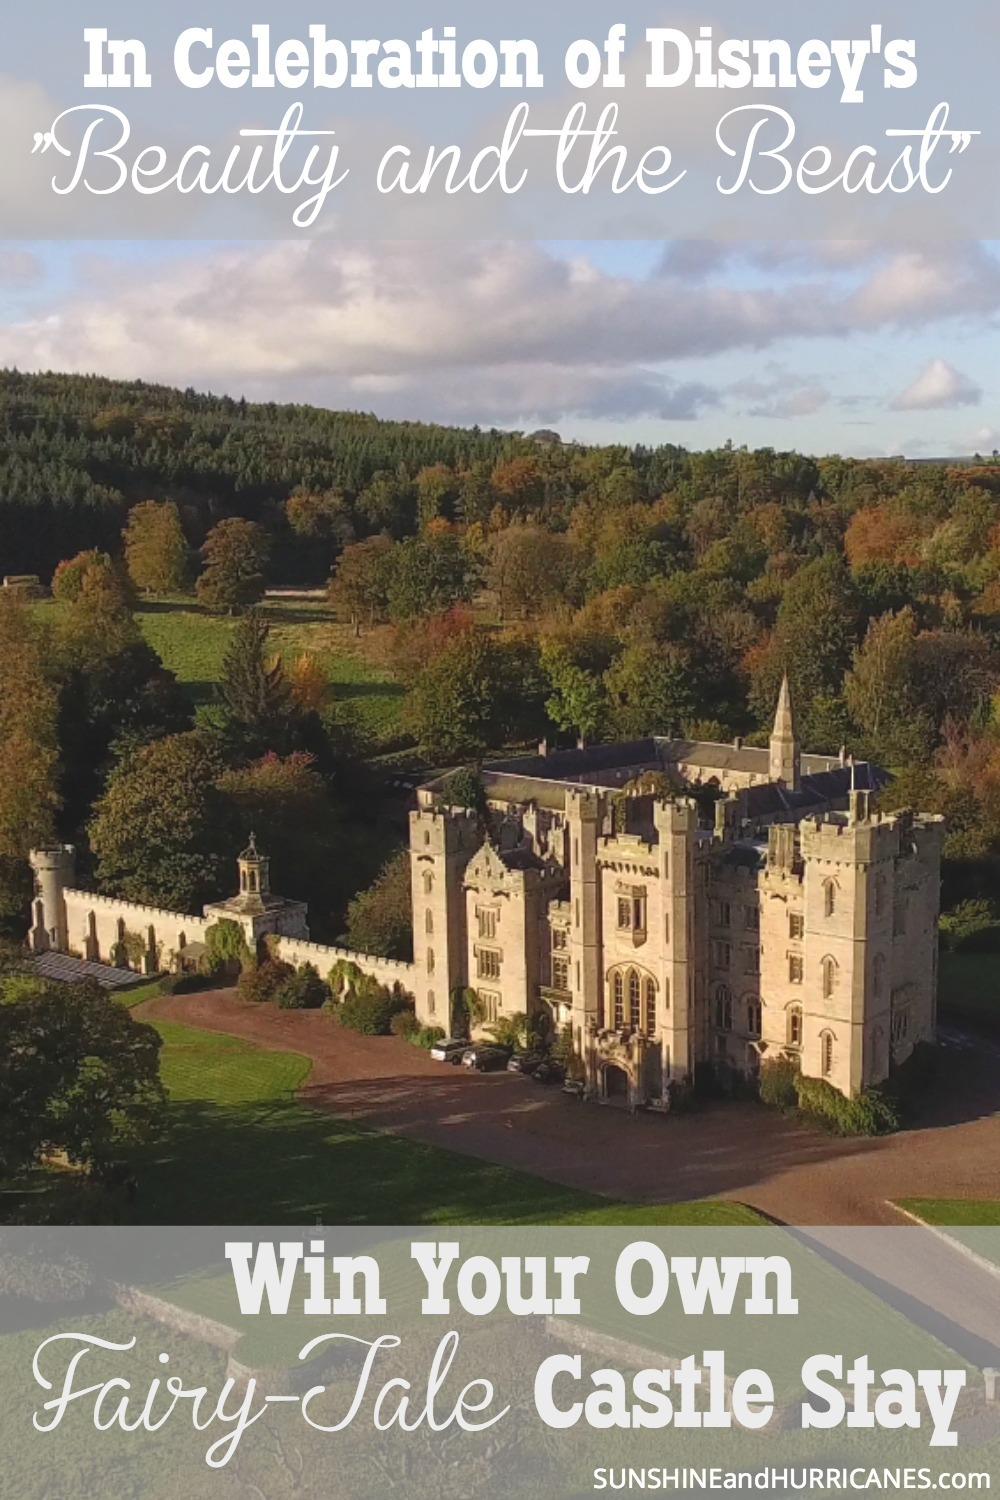 "Win your own fairy-tale like castle getaway from HomeAway in celebration of Disney's ""Beauty and the Beast"". It's your chance to feel like a princess and hold court with 20 guest for five nights in Duns, Scotland."